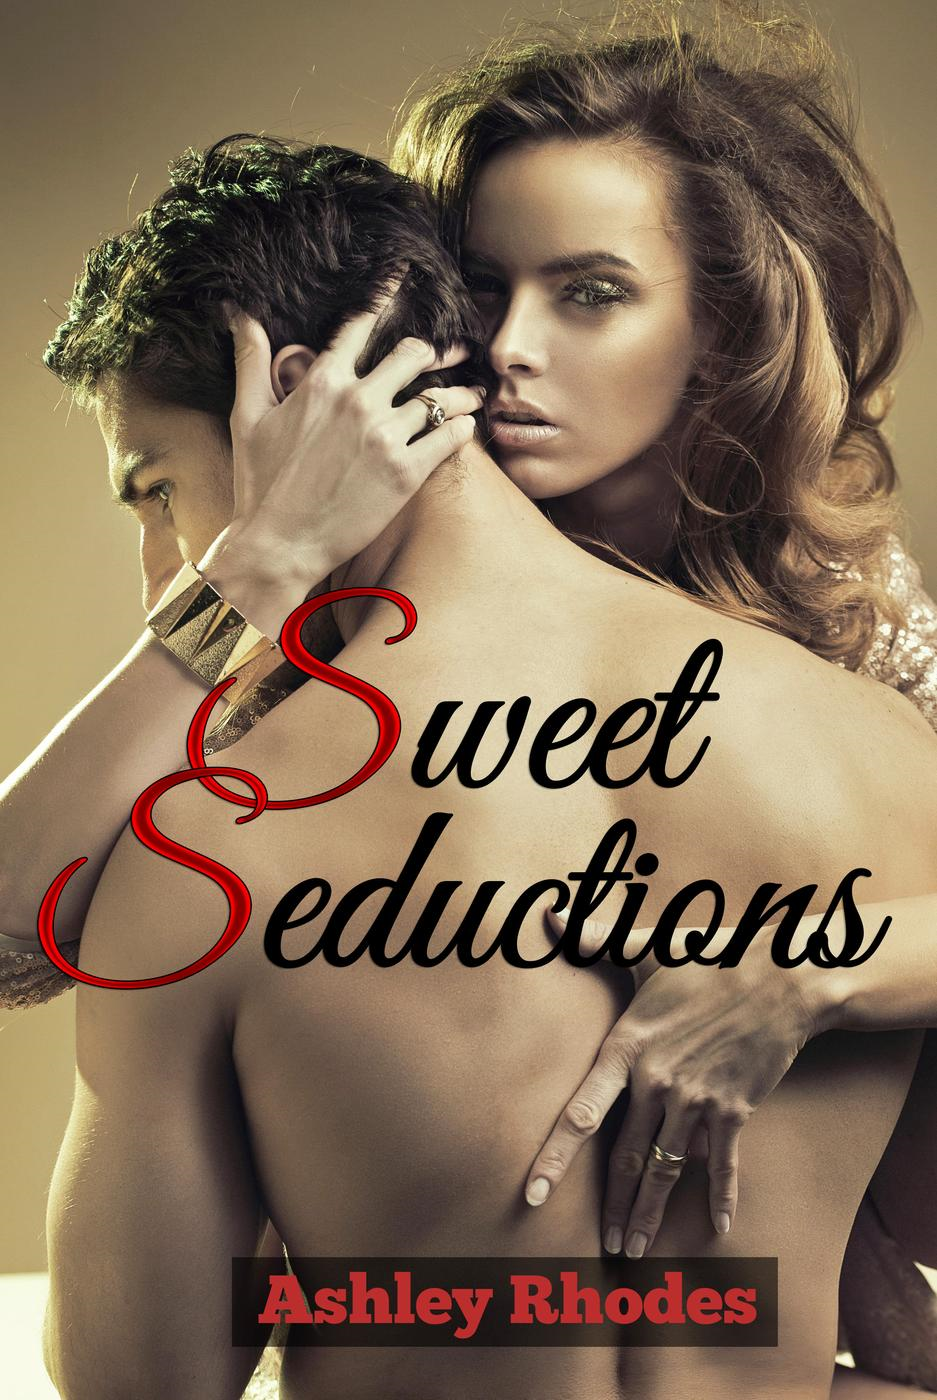 Ashley Rhodes - Sweet Seductions: Three Erotic Tales Featuring Younger Women and Older Men